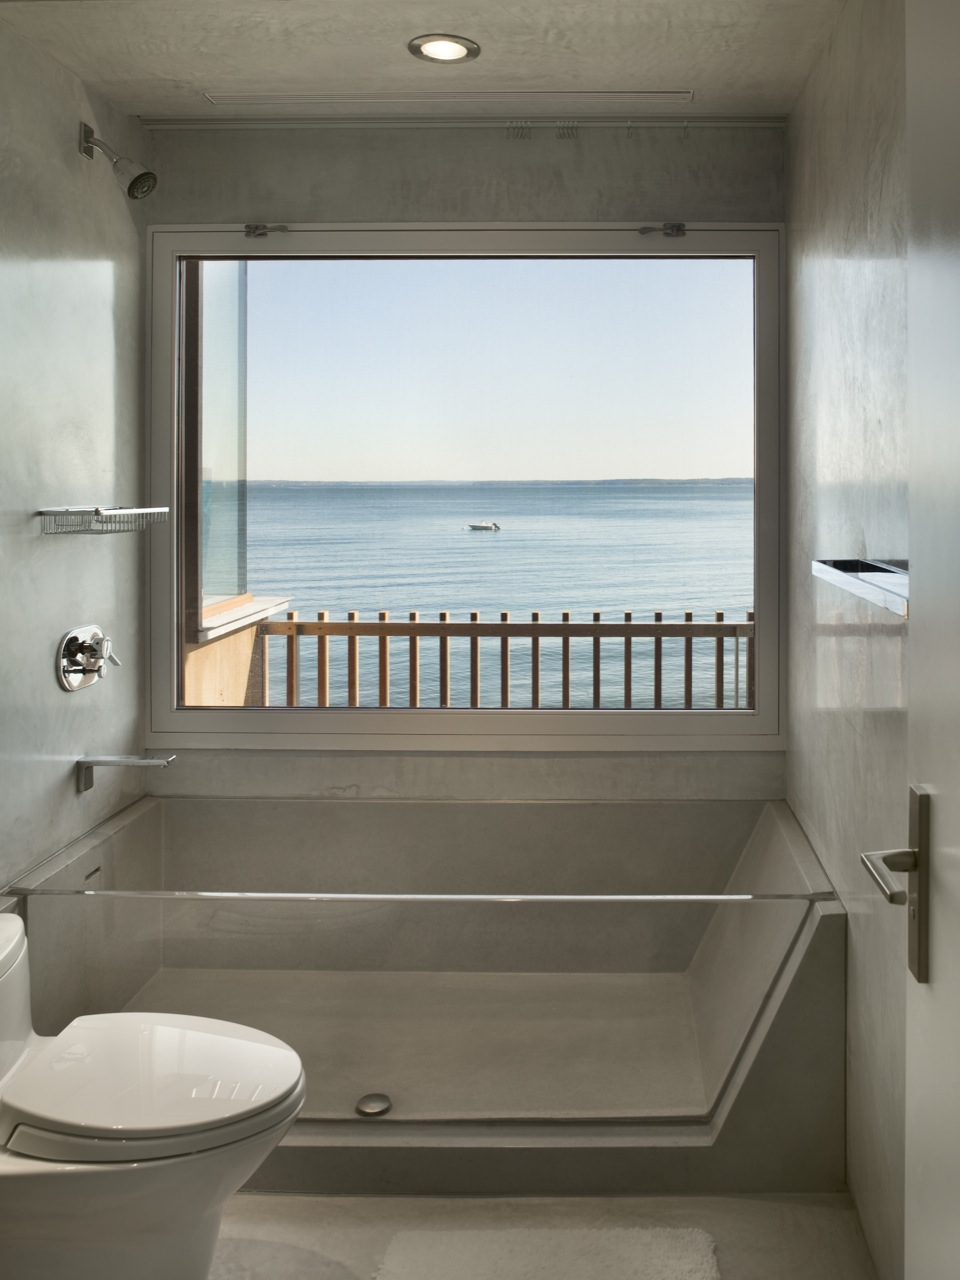 Oceanfront residence with stunning coastal views in for Bathroom seen photos